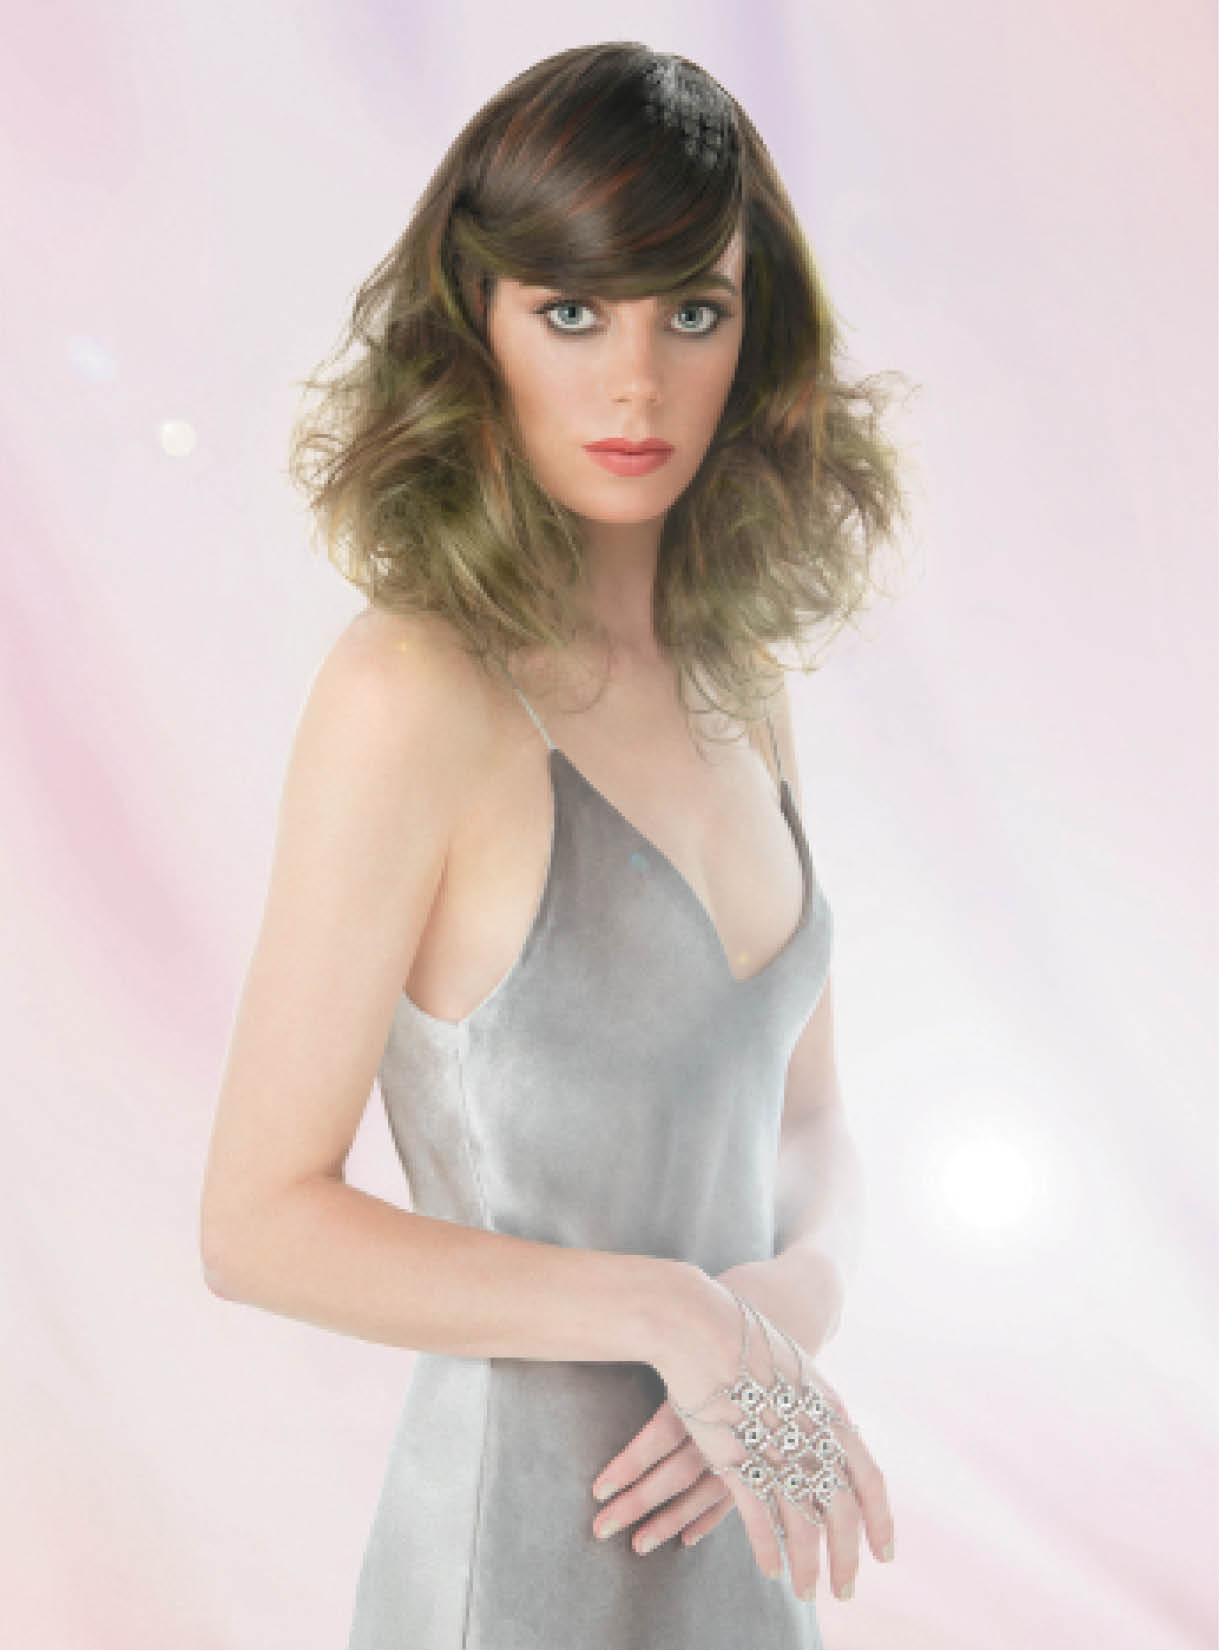 To create this Journey of Enlightenment look, Basham, Lee and Morgan took an offset triangle section in the fringe area, then backbrushed and smoothed it into a sweeping side-shape before pinning it in place. After using a curling iron to create undulating waves, the trio used a brush to smooth the remaining strands around the crown, keeping volume at the ends. For the finishing touch, they used a metal stencil and metallic loose-shadows to embellish the hair.